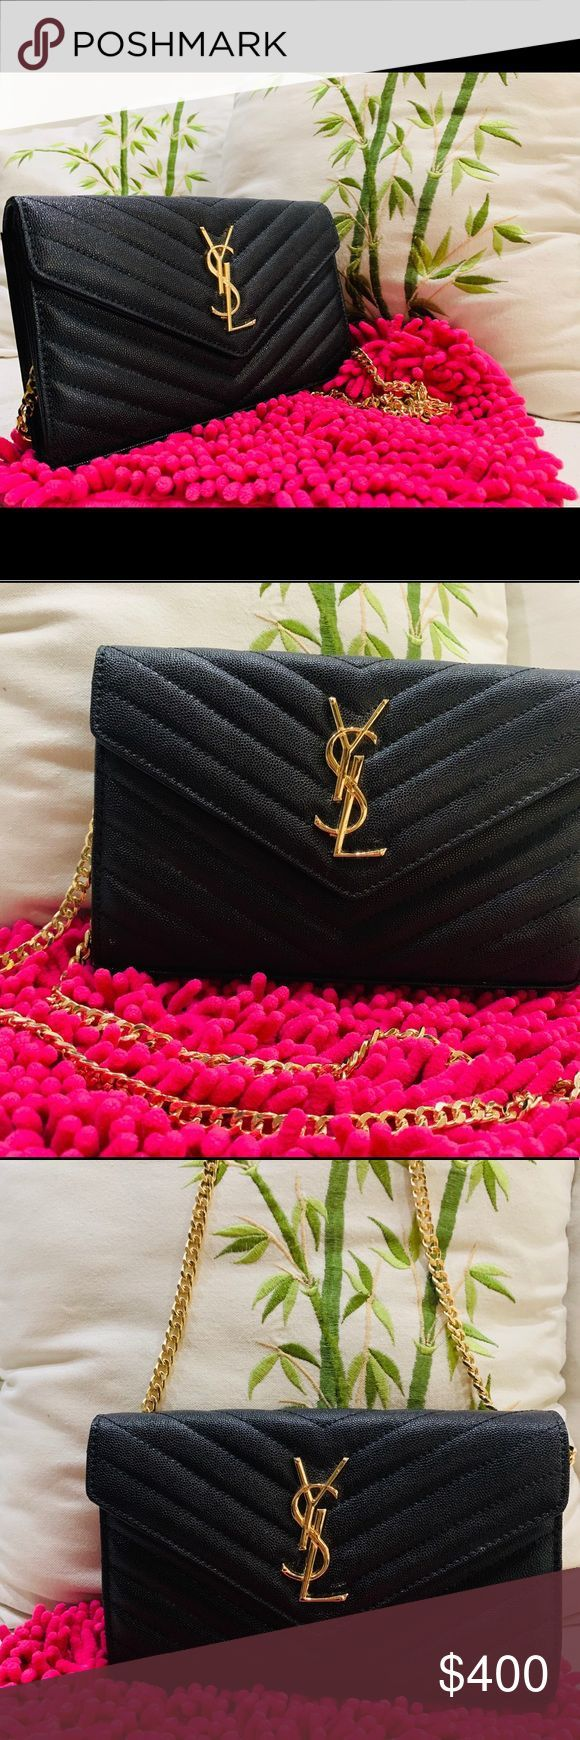 Ysl Envelop sling bag Heavy chain gold color Refurbished bag from Japan and  Ysl Envelop sling bag Heavy chain gold color Refurbished bag from Japan and